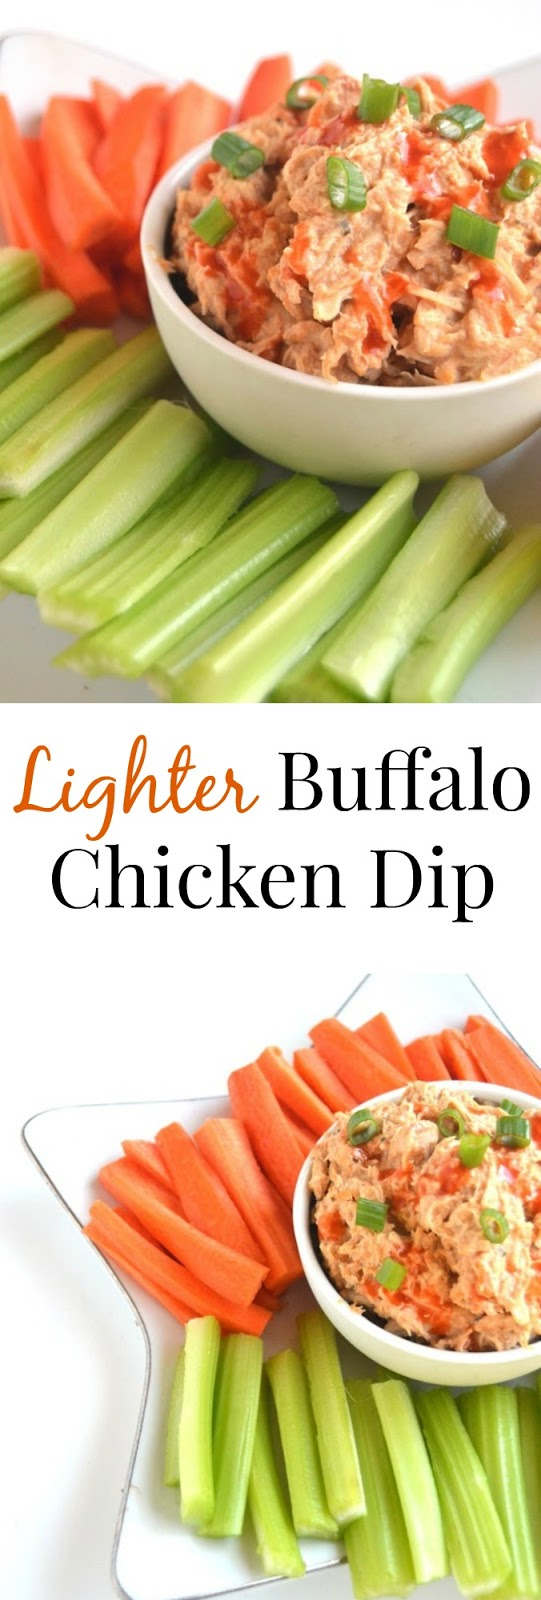 This Lighter Buffalo Chicken Dip is healthier than the original but is still full of flavor and makes the perfect appetizer! Made easy by being cooked in the slow cooker. www.nutritionistreviews.com